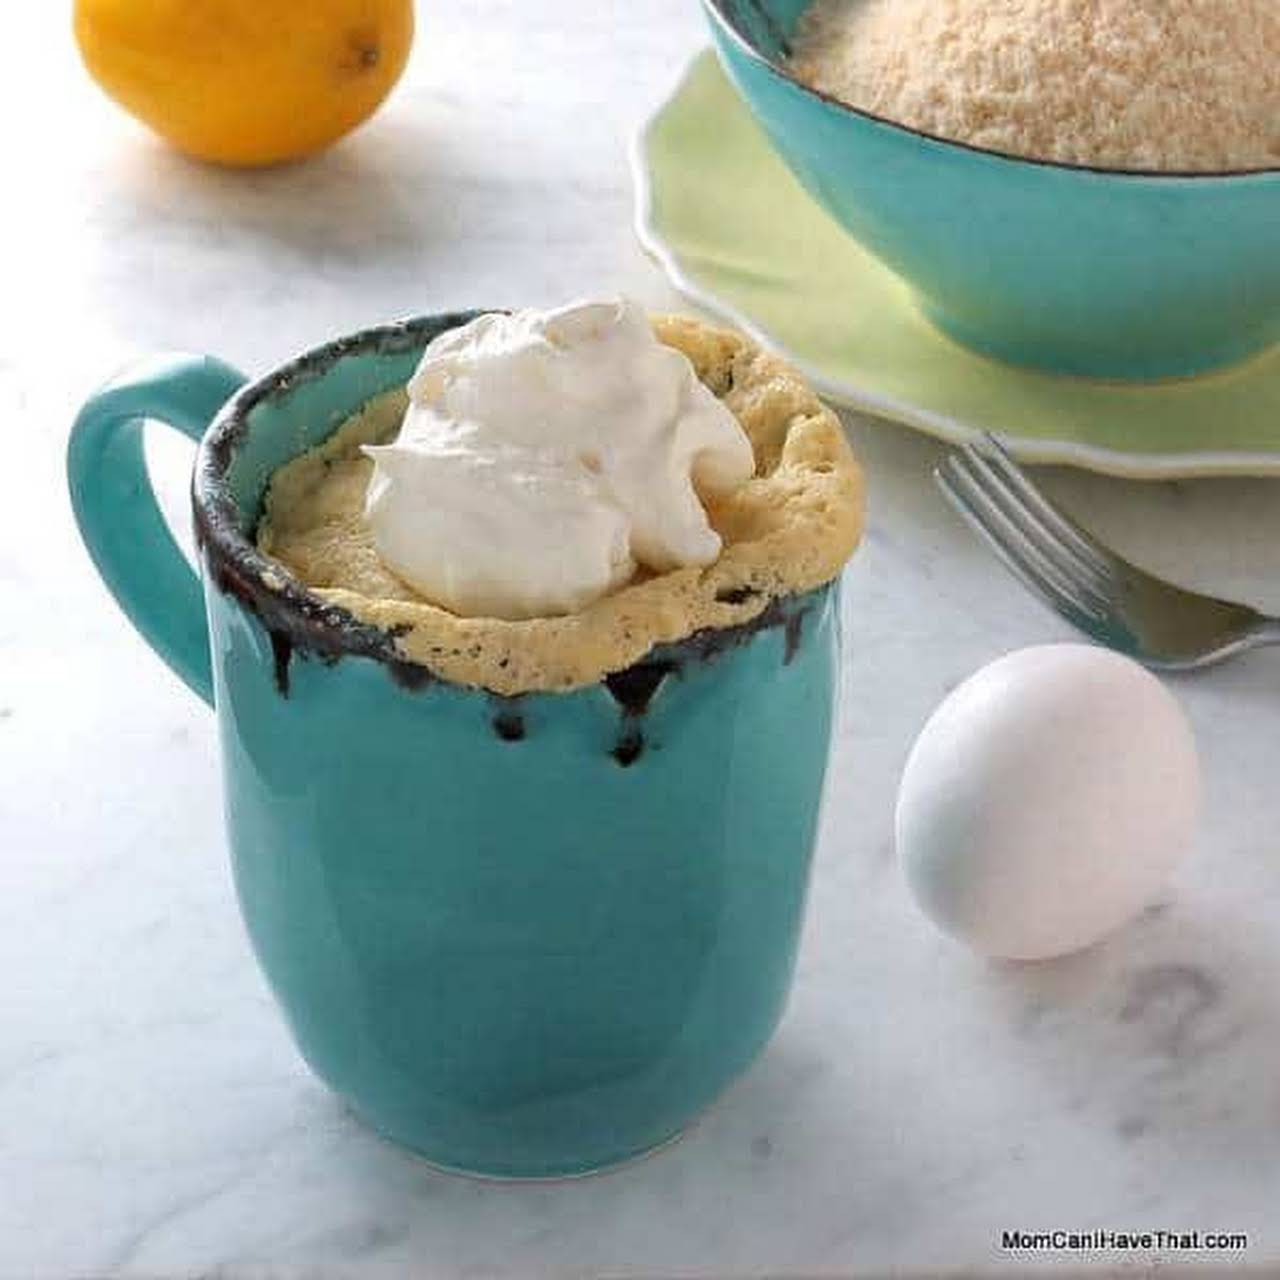 Low Carb Lemon Mug Cake (Sugar-free Lemon Cake)